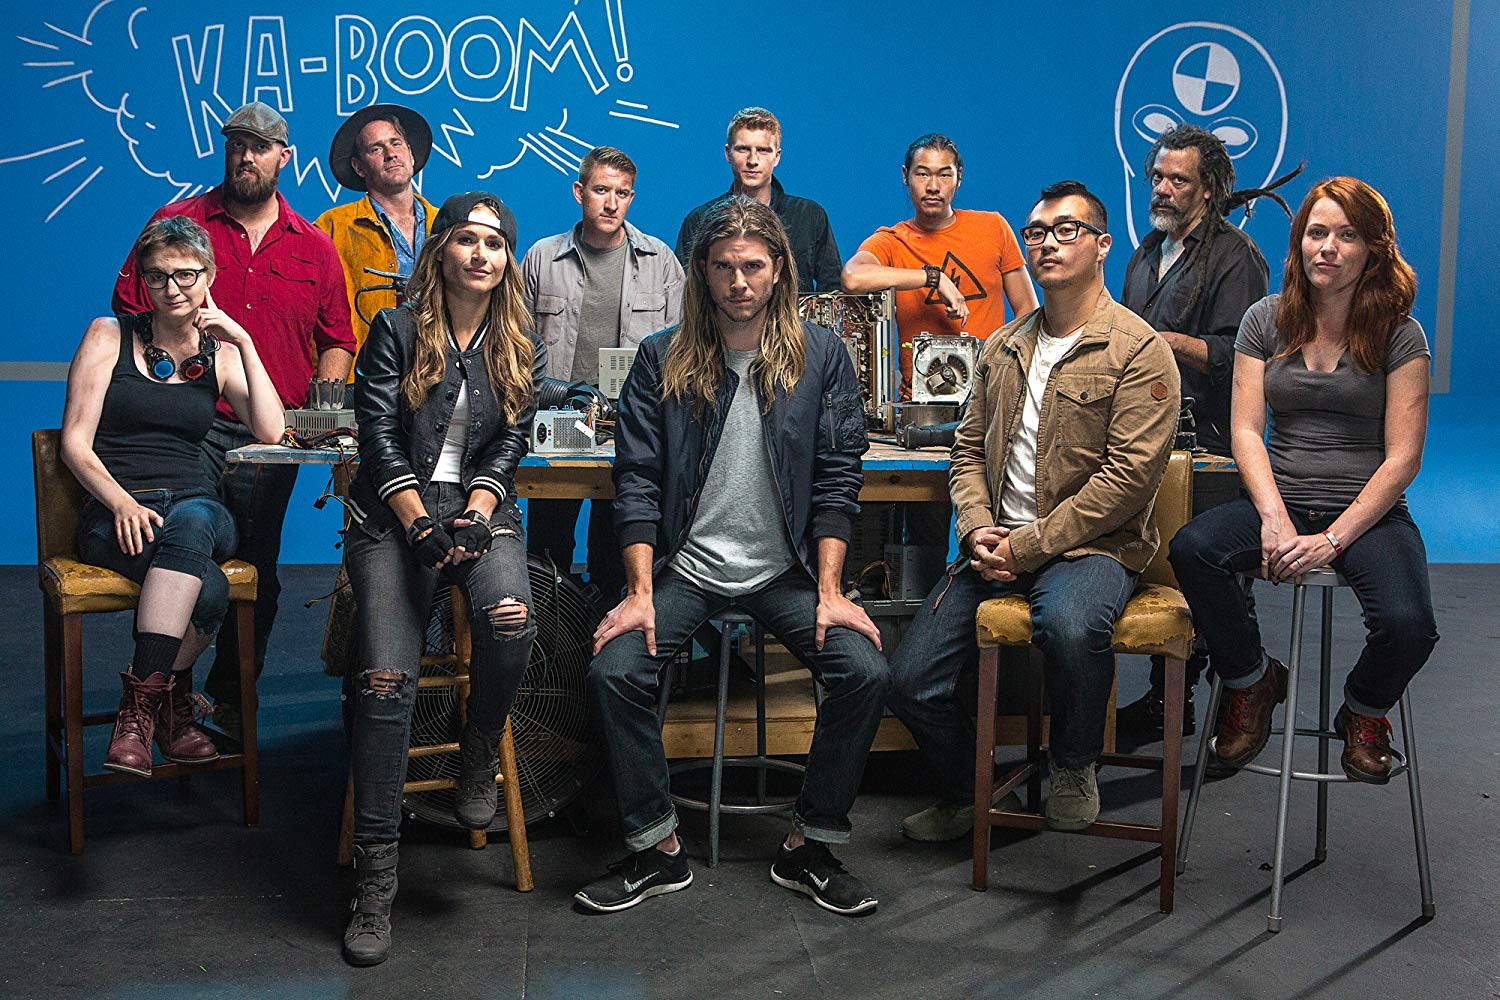 Hill hosted the 2017 series 'MythBusters: The Search', a competition series that selected the next 'MythBusters' hosts.